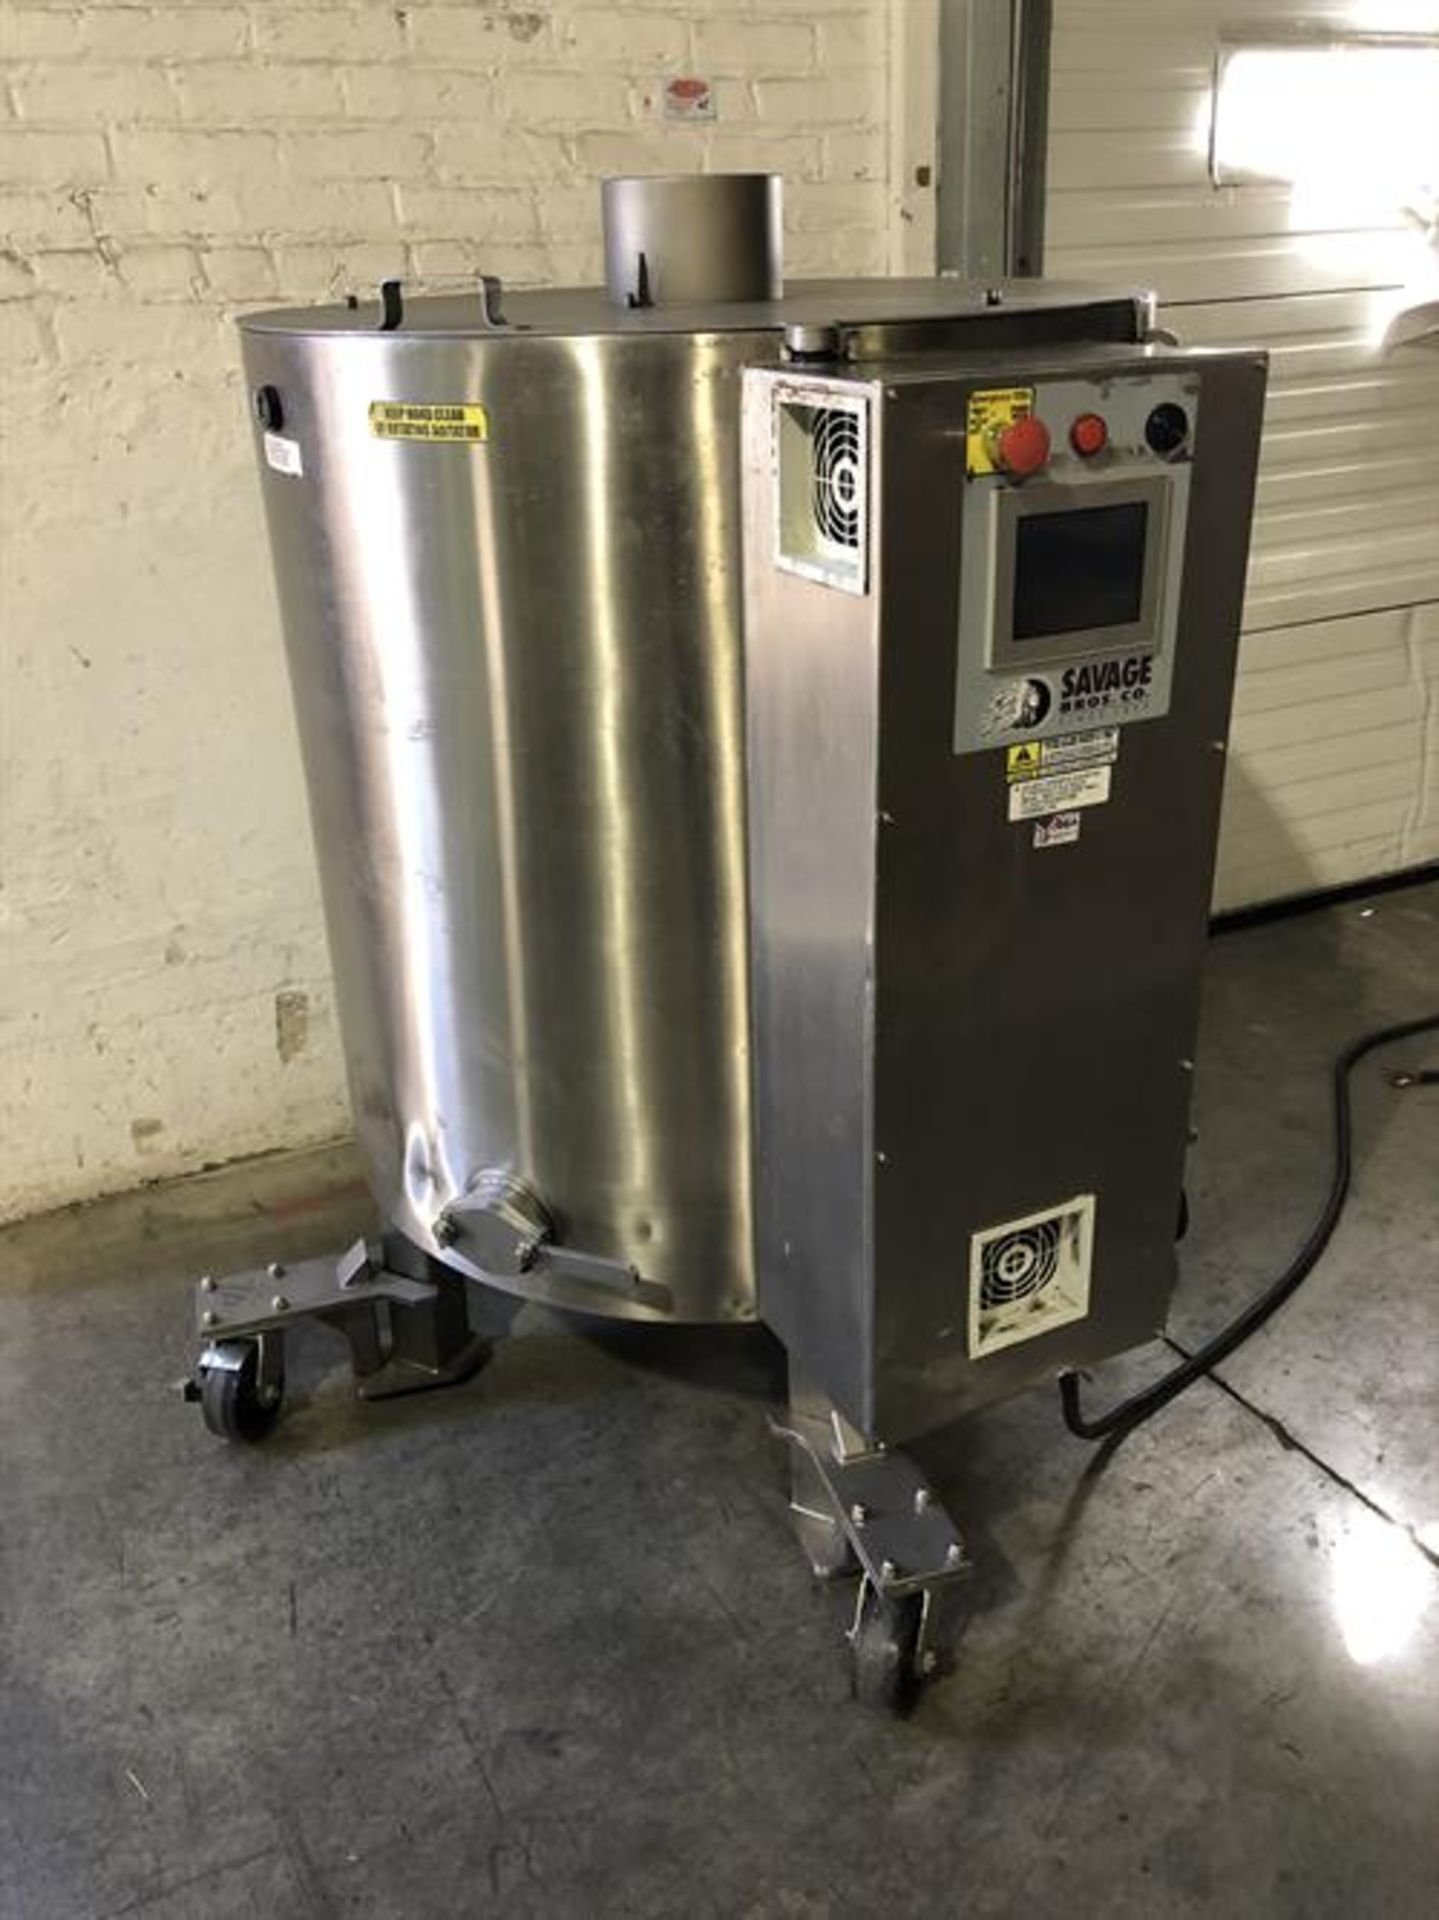 Savage 1250-lb Stainless Steel Chocolate Melter - model 0974-36, with PLC touchscreen controls - - Image 5 of 8